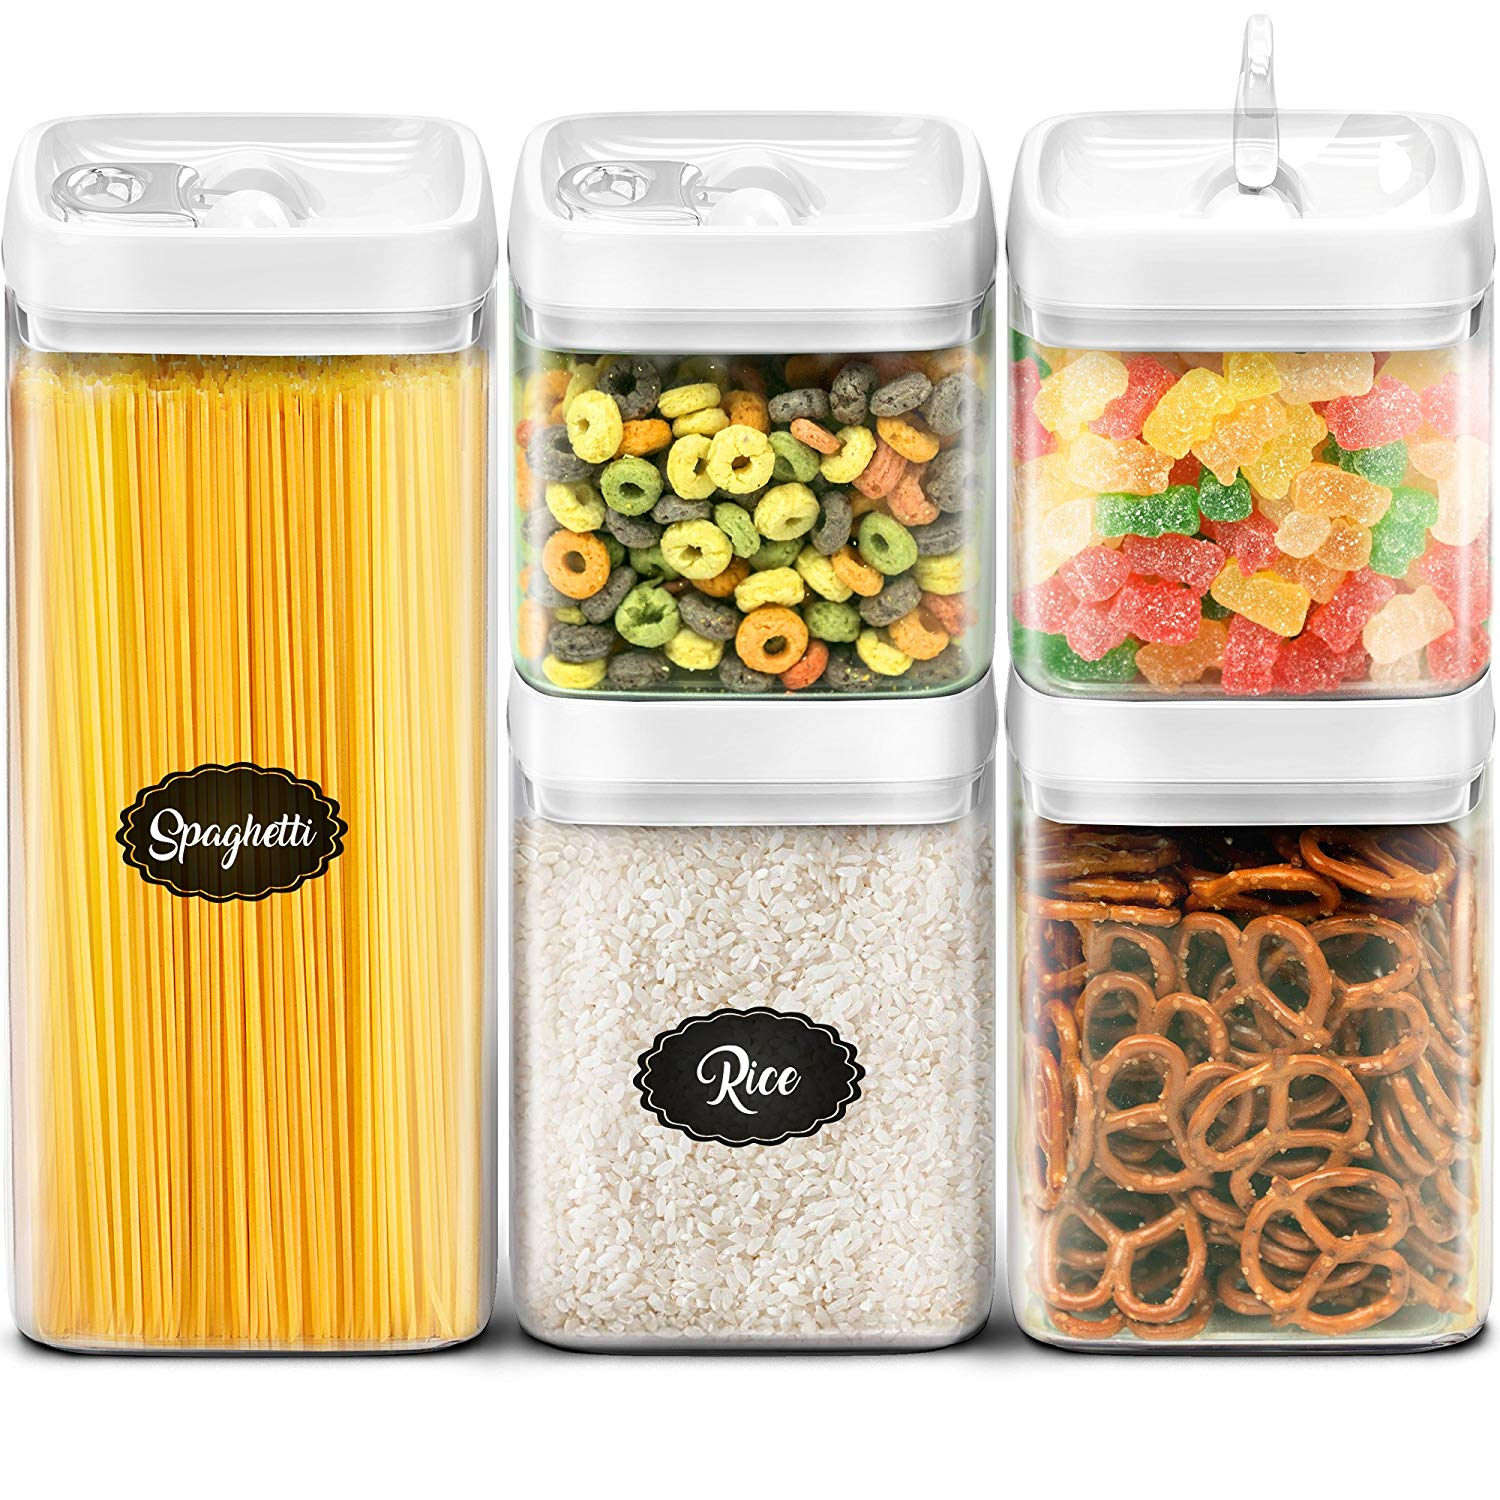 Airtight Storage Containers Set - Best Kitchen Dry Food Containers with Lids - Clear Plastic Food Storage Containers BPA Free - Cereal Storage Containers - 5 Piece Airtight Canister - Extra Capacity